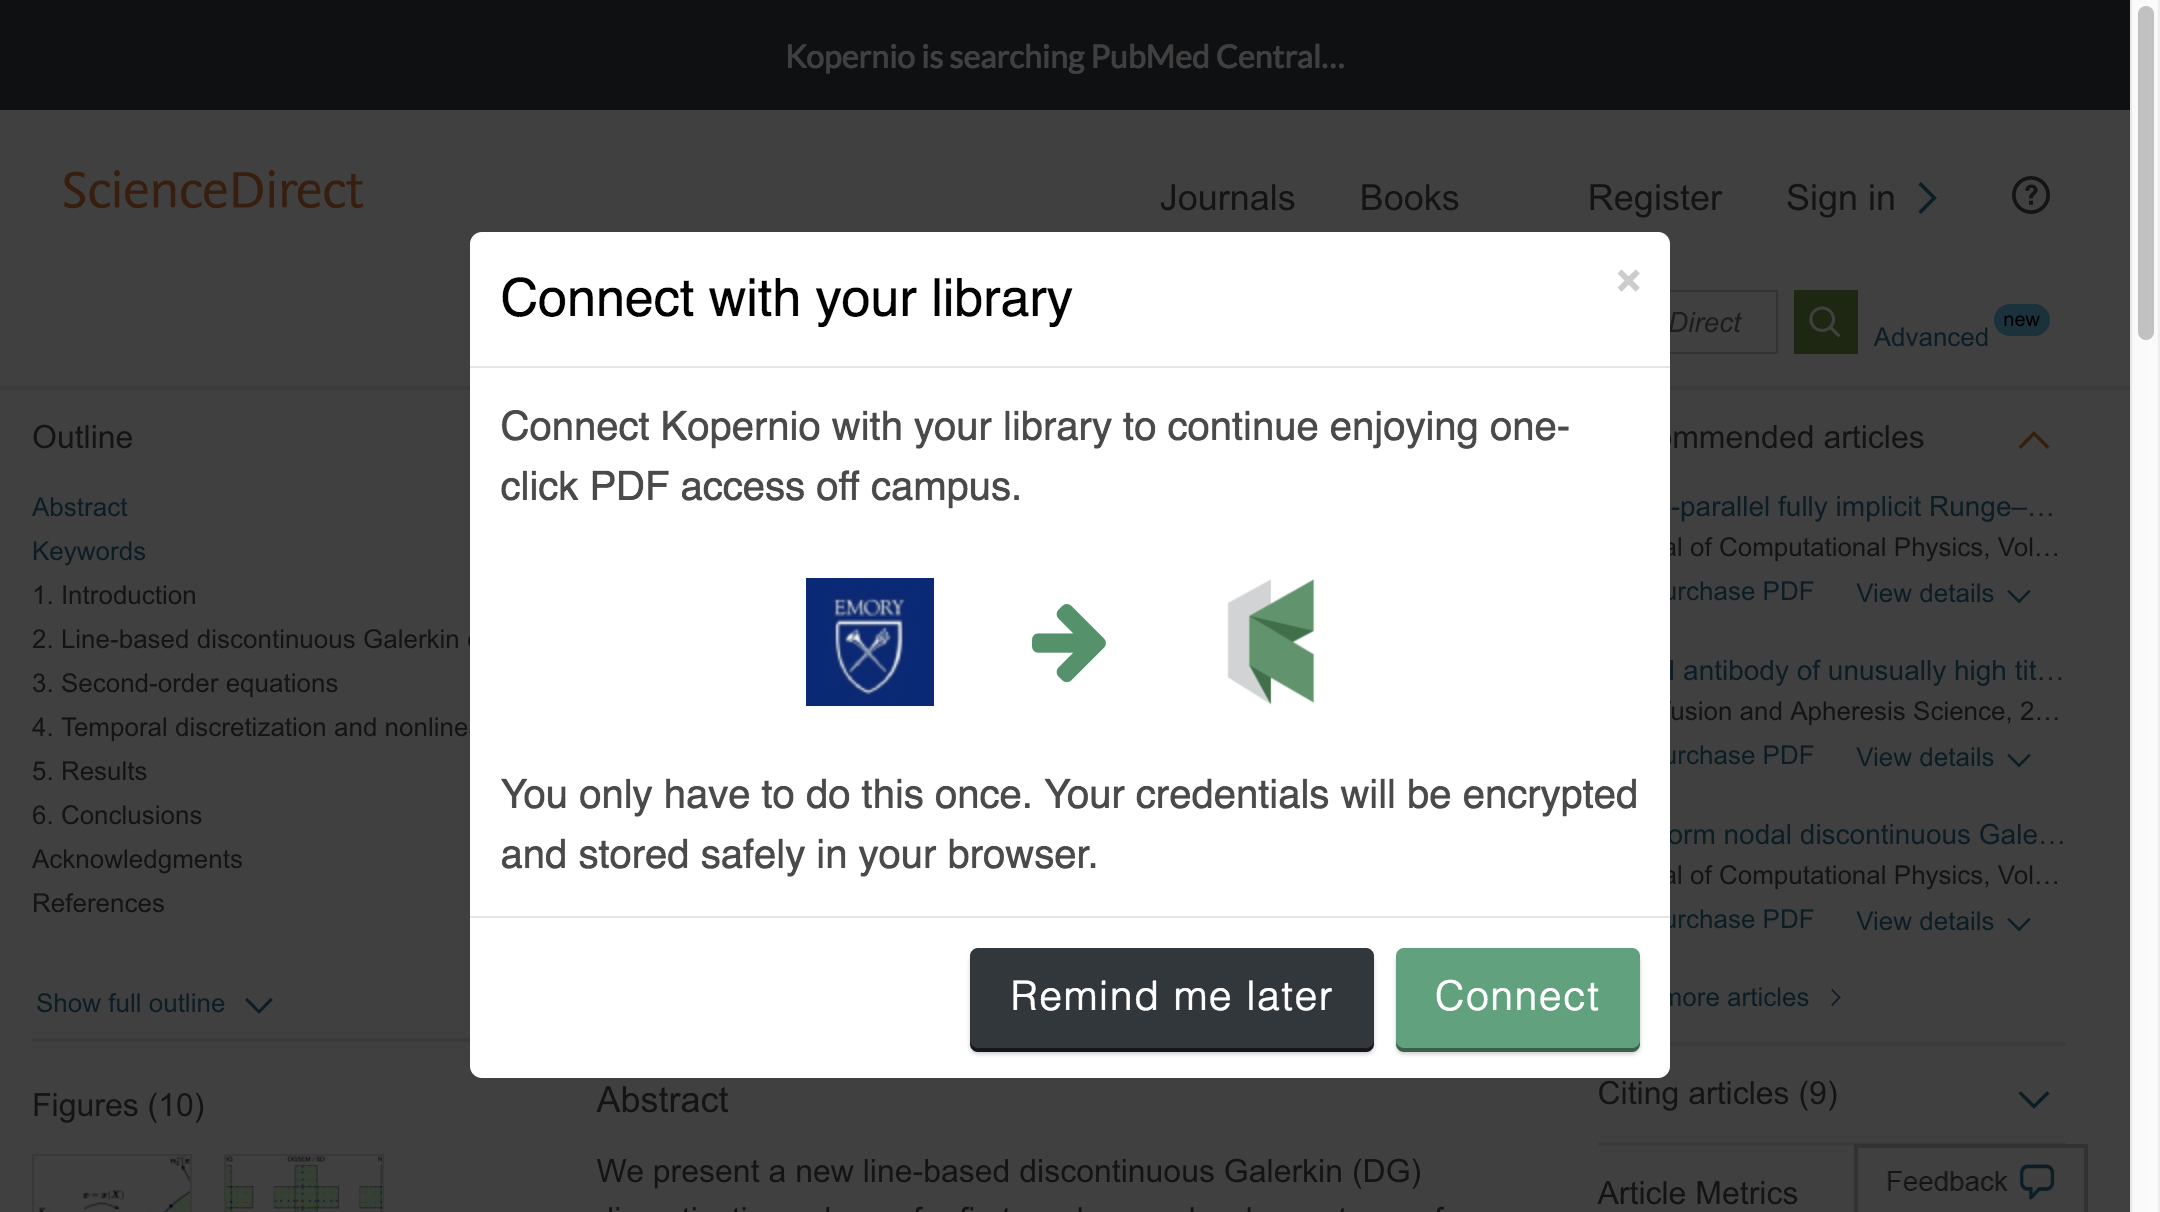 Connect to library prompt for off-campus access to Emory University School of Medicine e-resources.